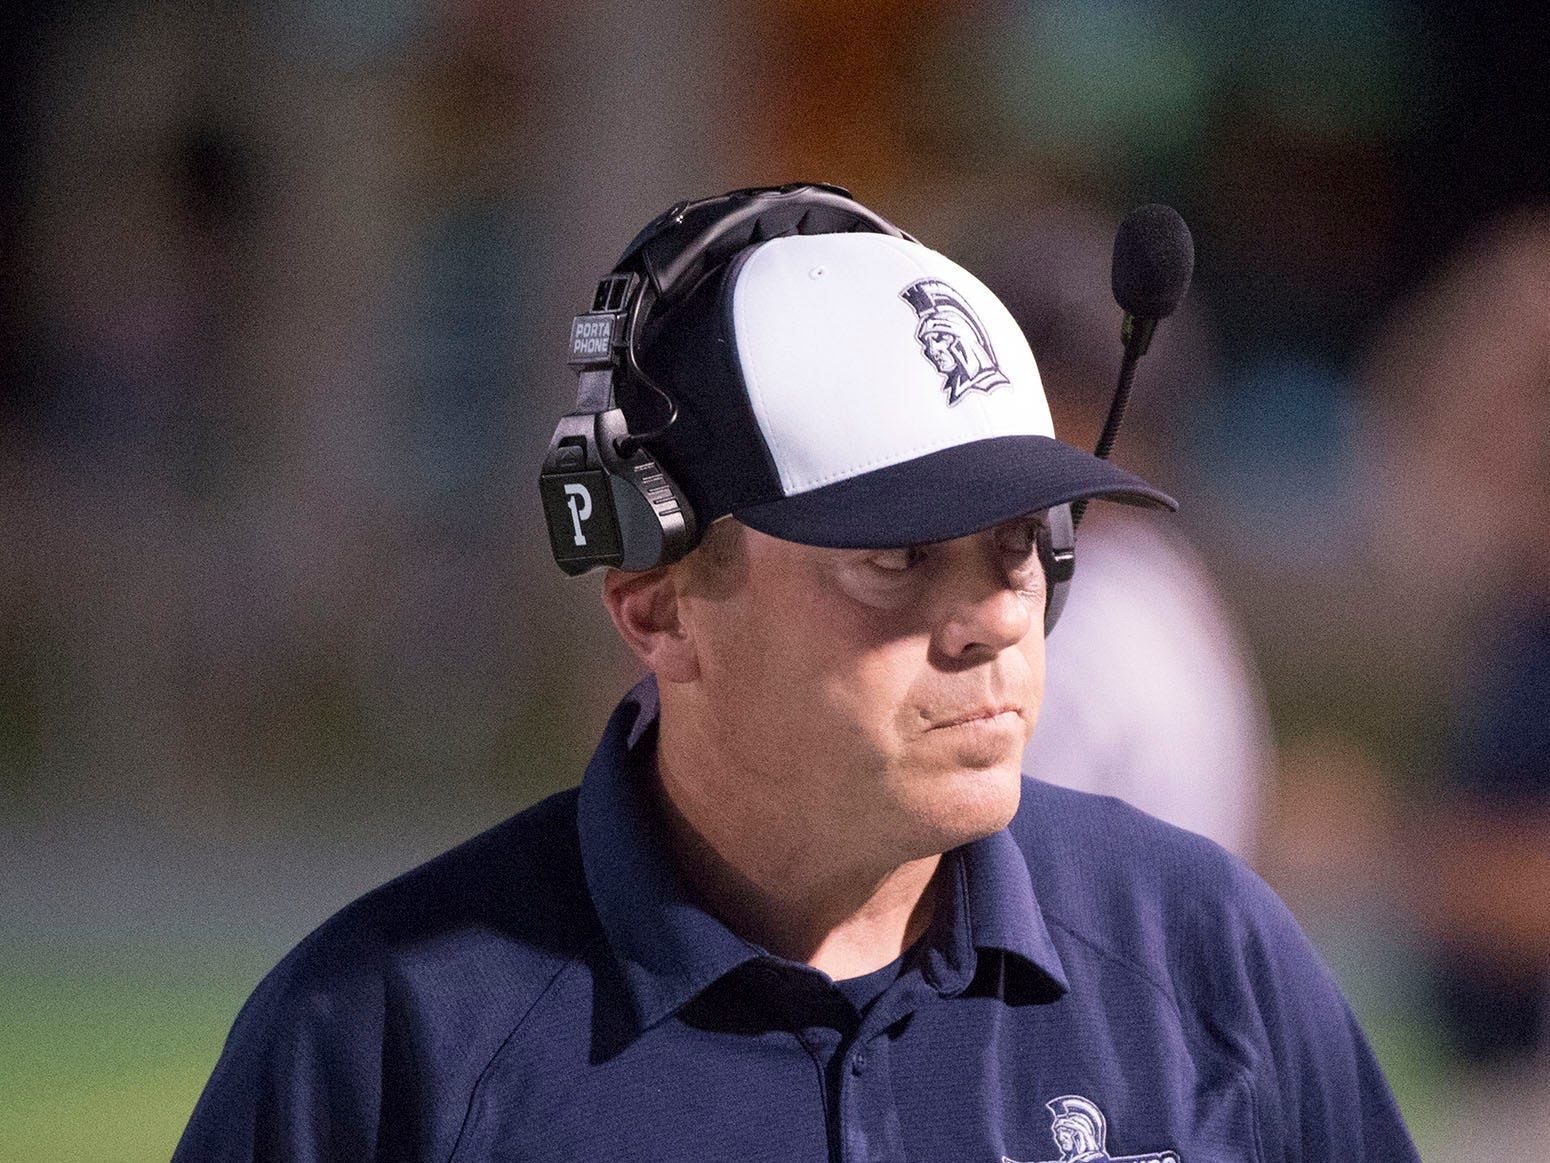 Assistant coach Gary Carter is on the sidelines for the Trojans. Carter was on one of the last Trojans teams to defeat Cumberland Valley High School in football. Chambersburg Trojans are 5-1 after a homecoming victory over Cumberland Valley 28-14 in PIAA football on Friday, Sept. 28, 2018.